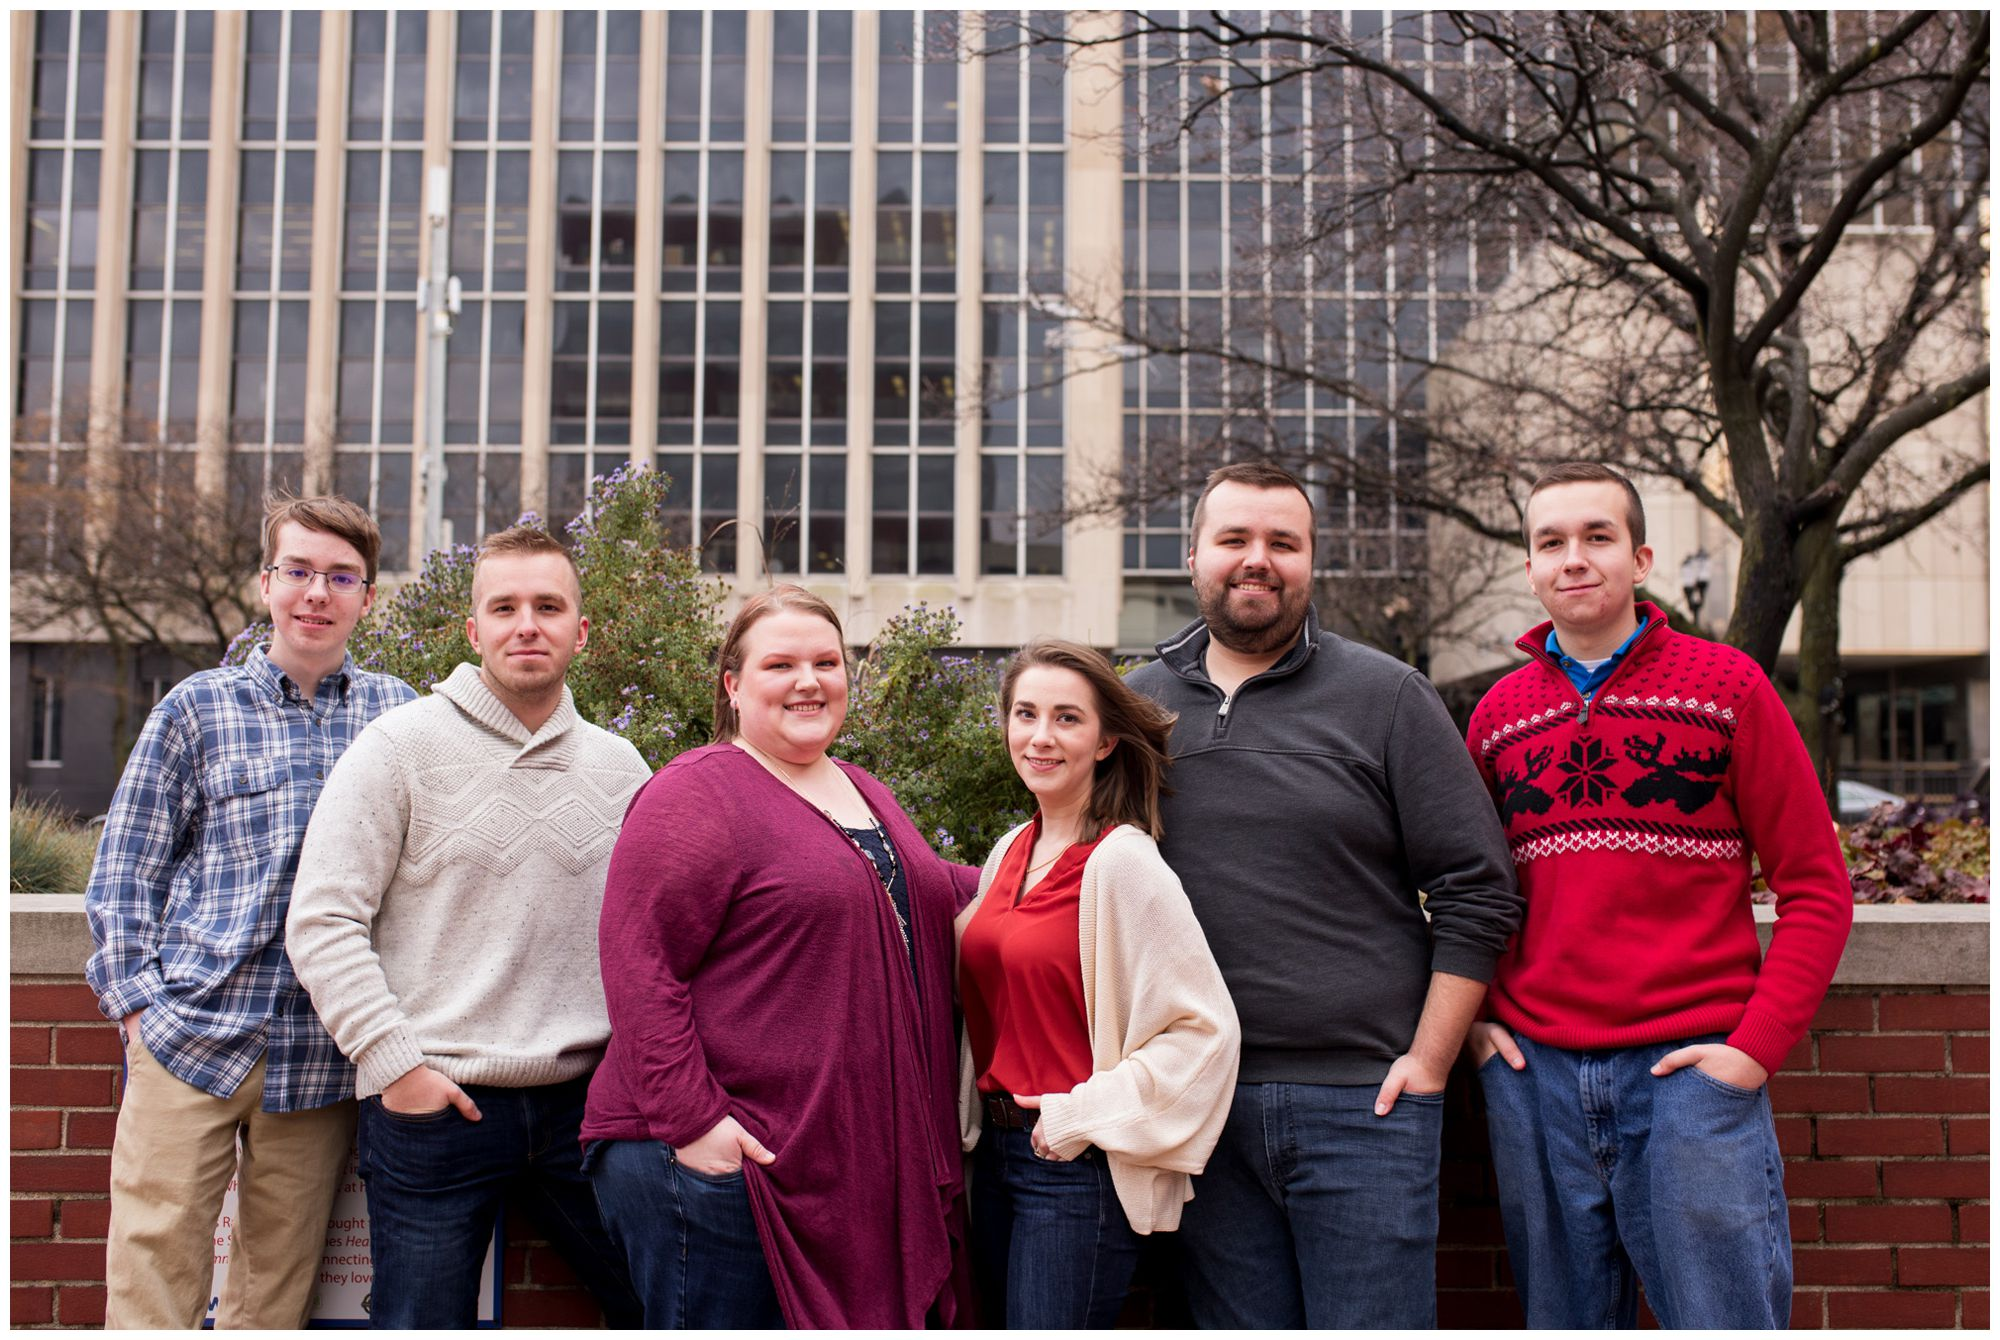 urban downtown Indianapolis family session with older siblings